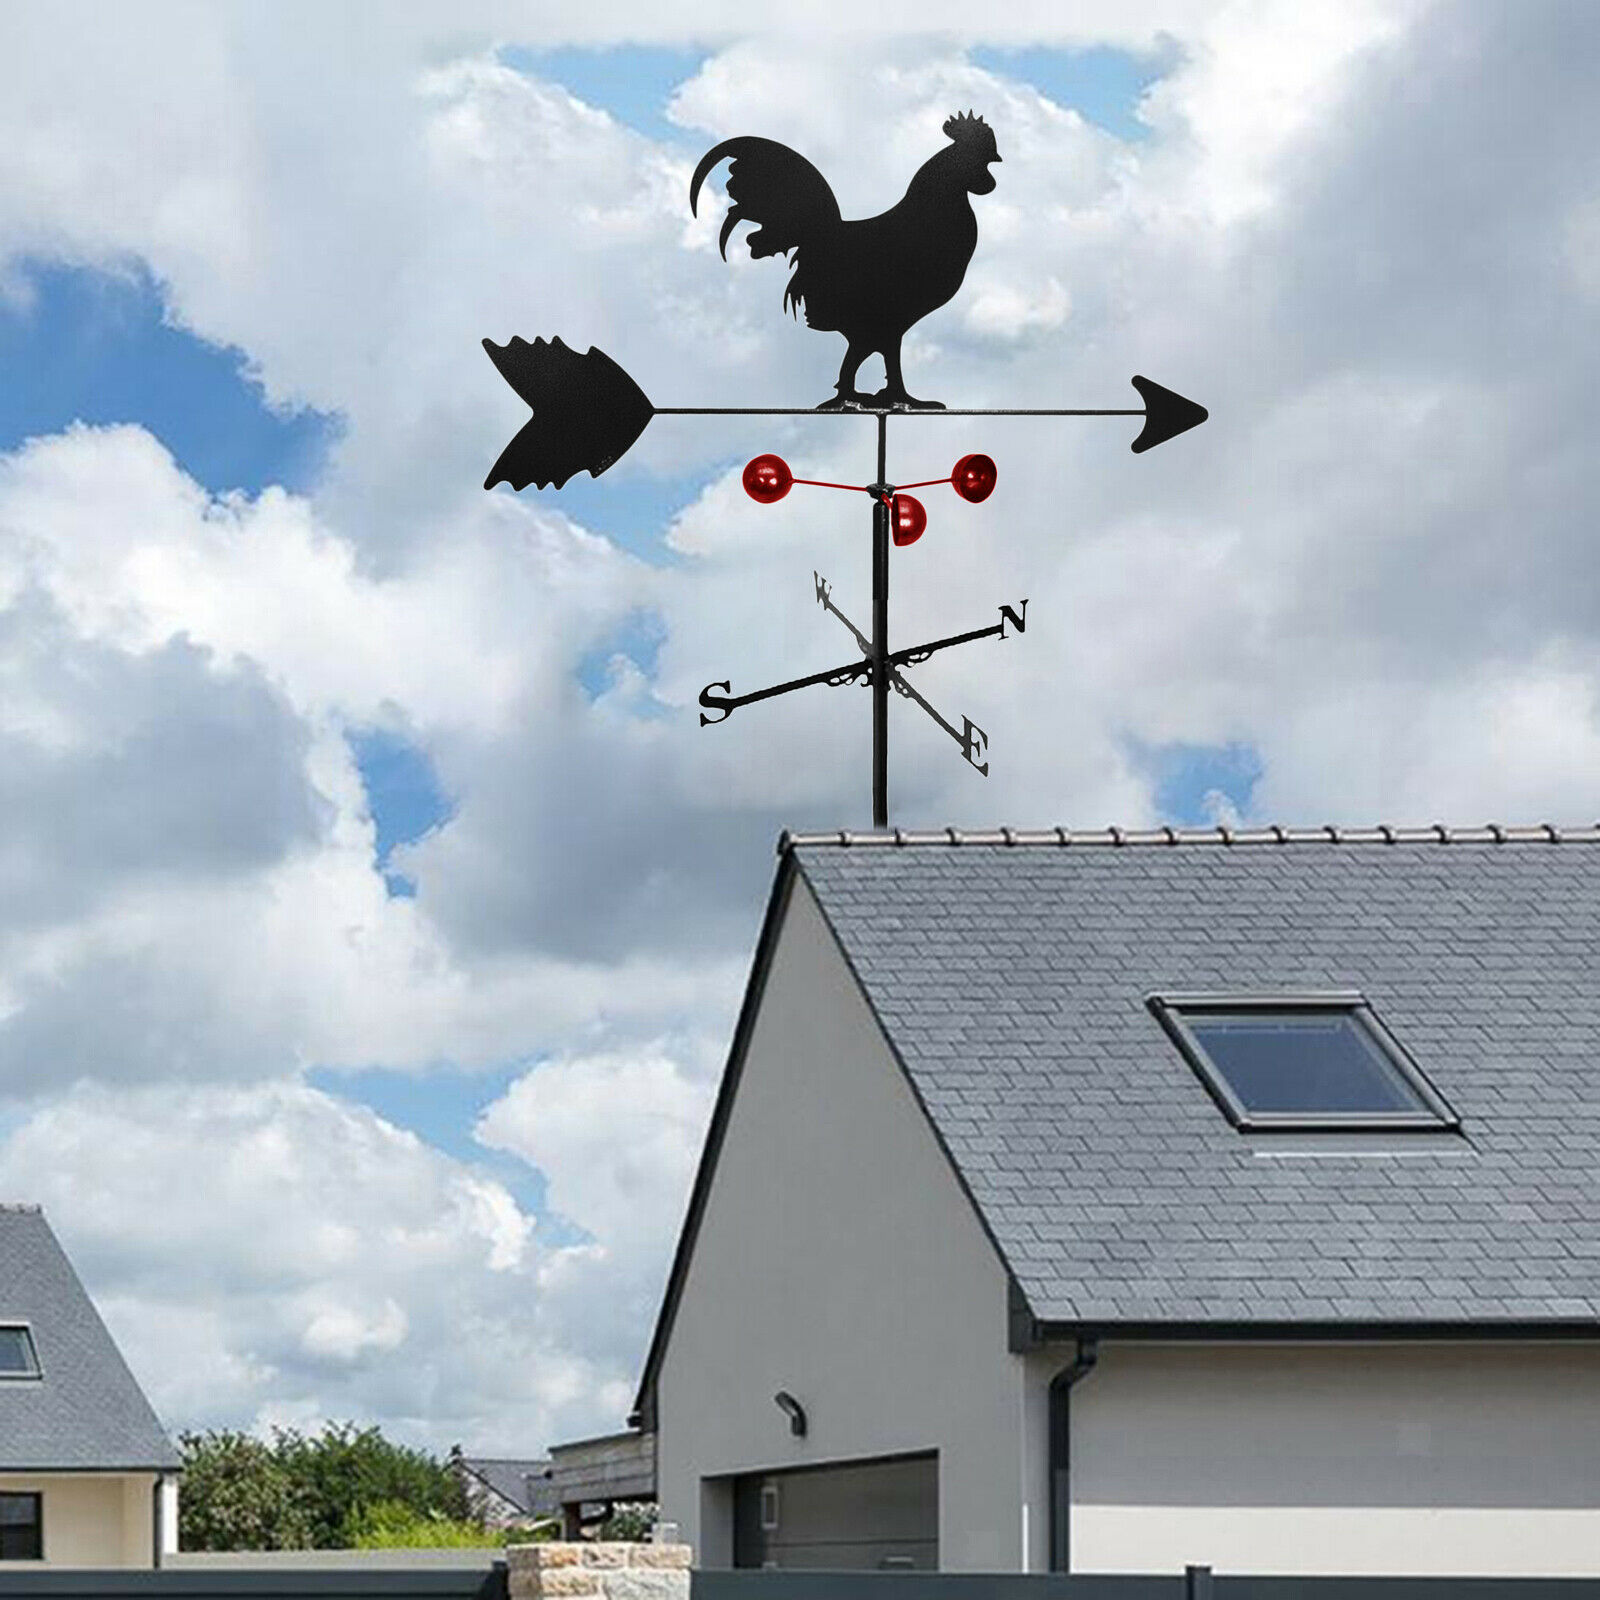 Retro Metal Rooster Weathervane Wind Direction Indicator Yard Stake Ornament